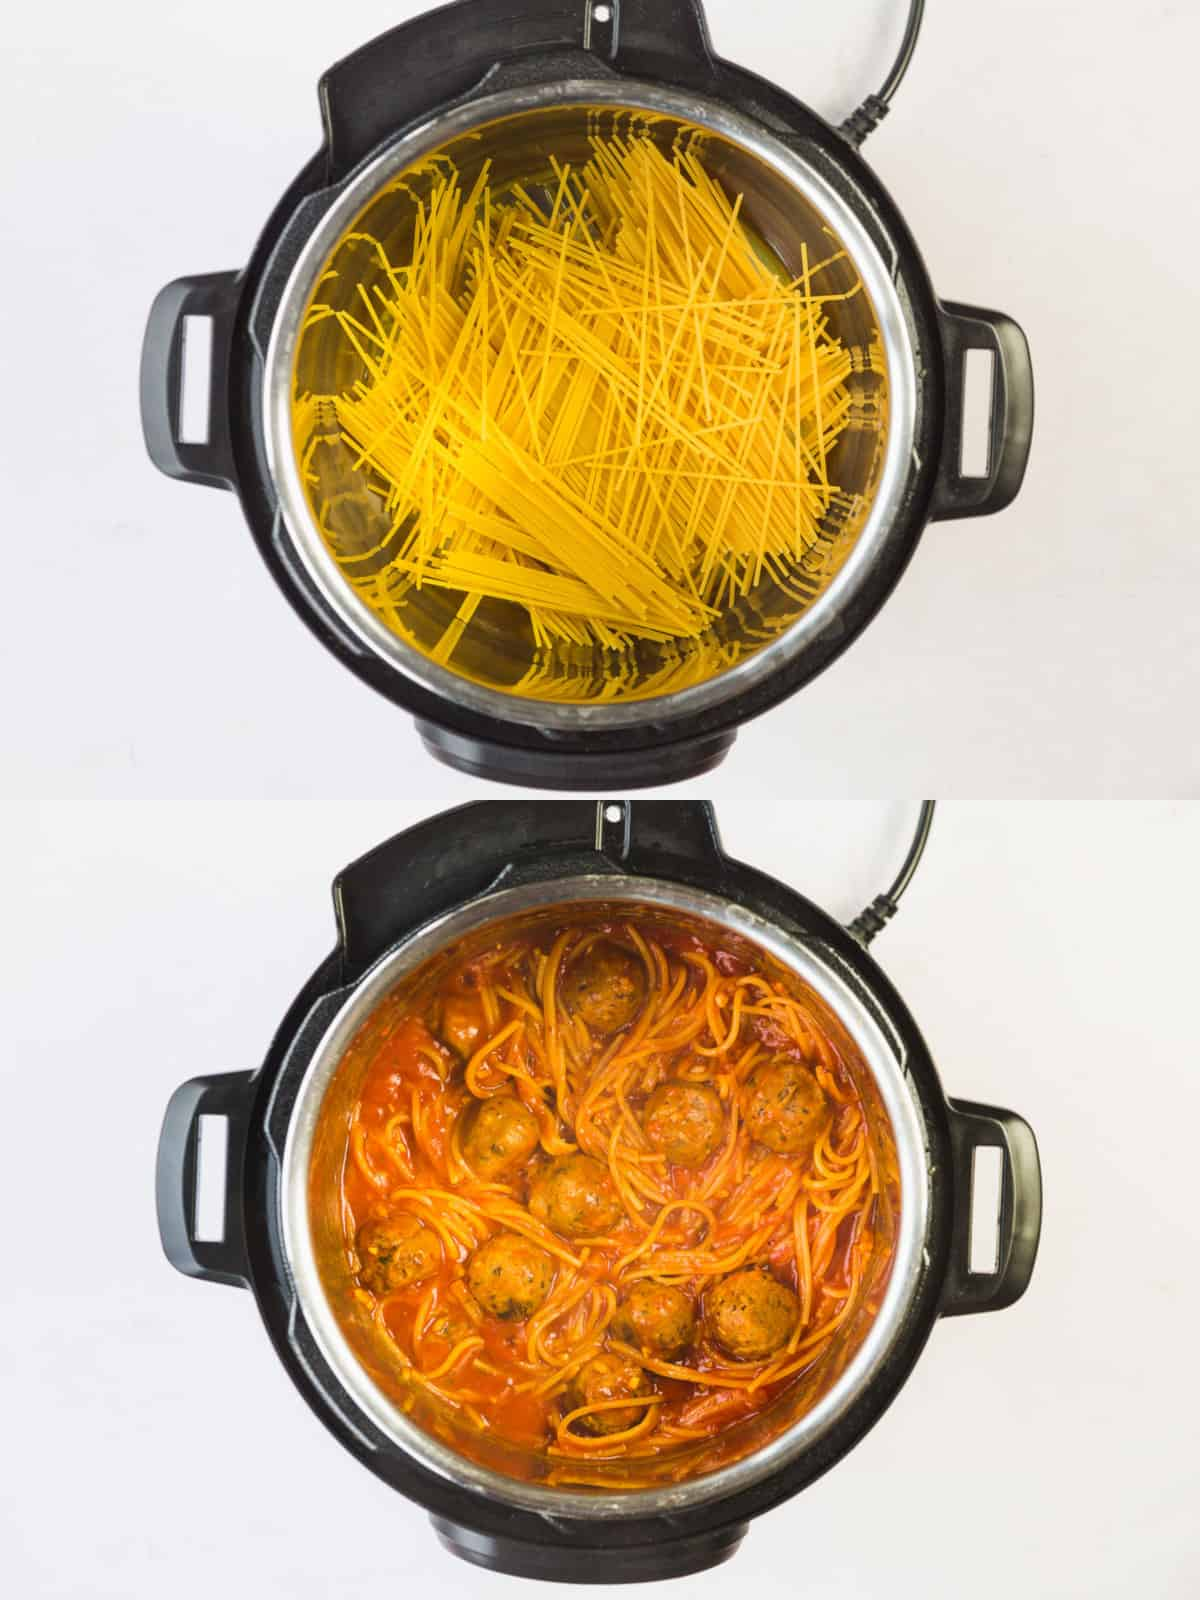 Two pictures showing how spaghetti looks after being cooked for this recipe